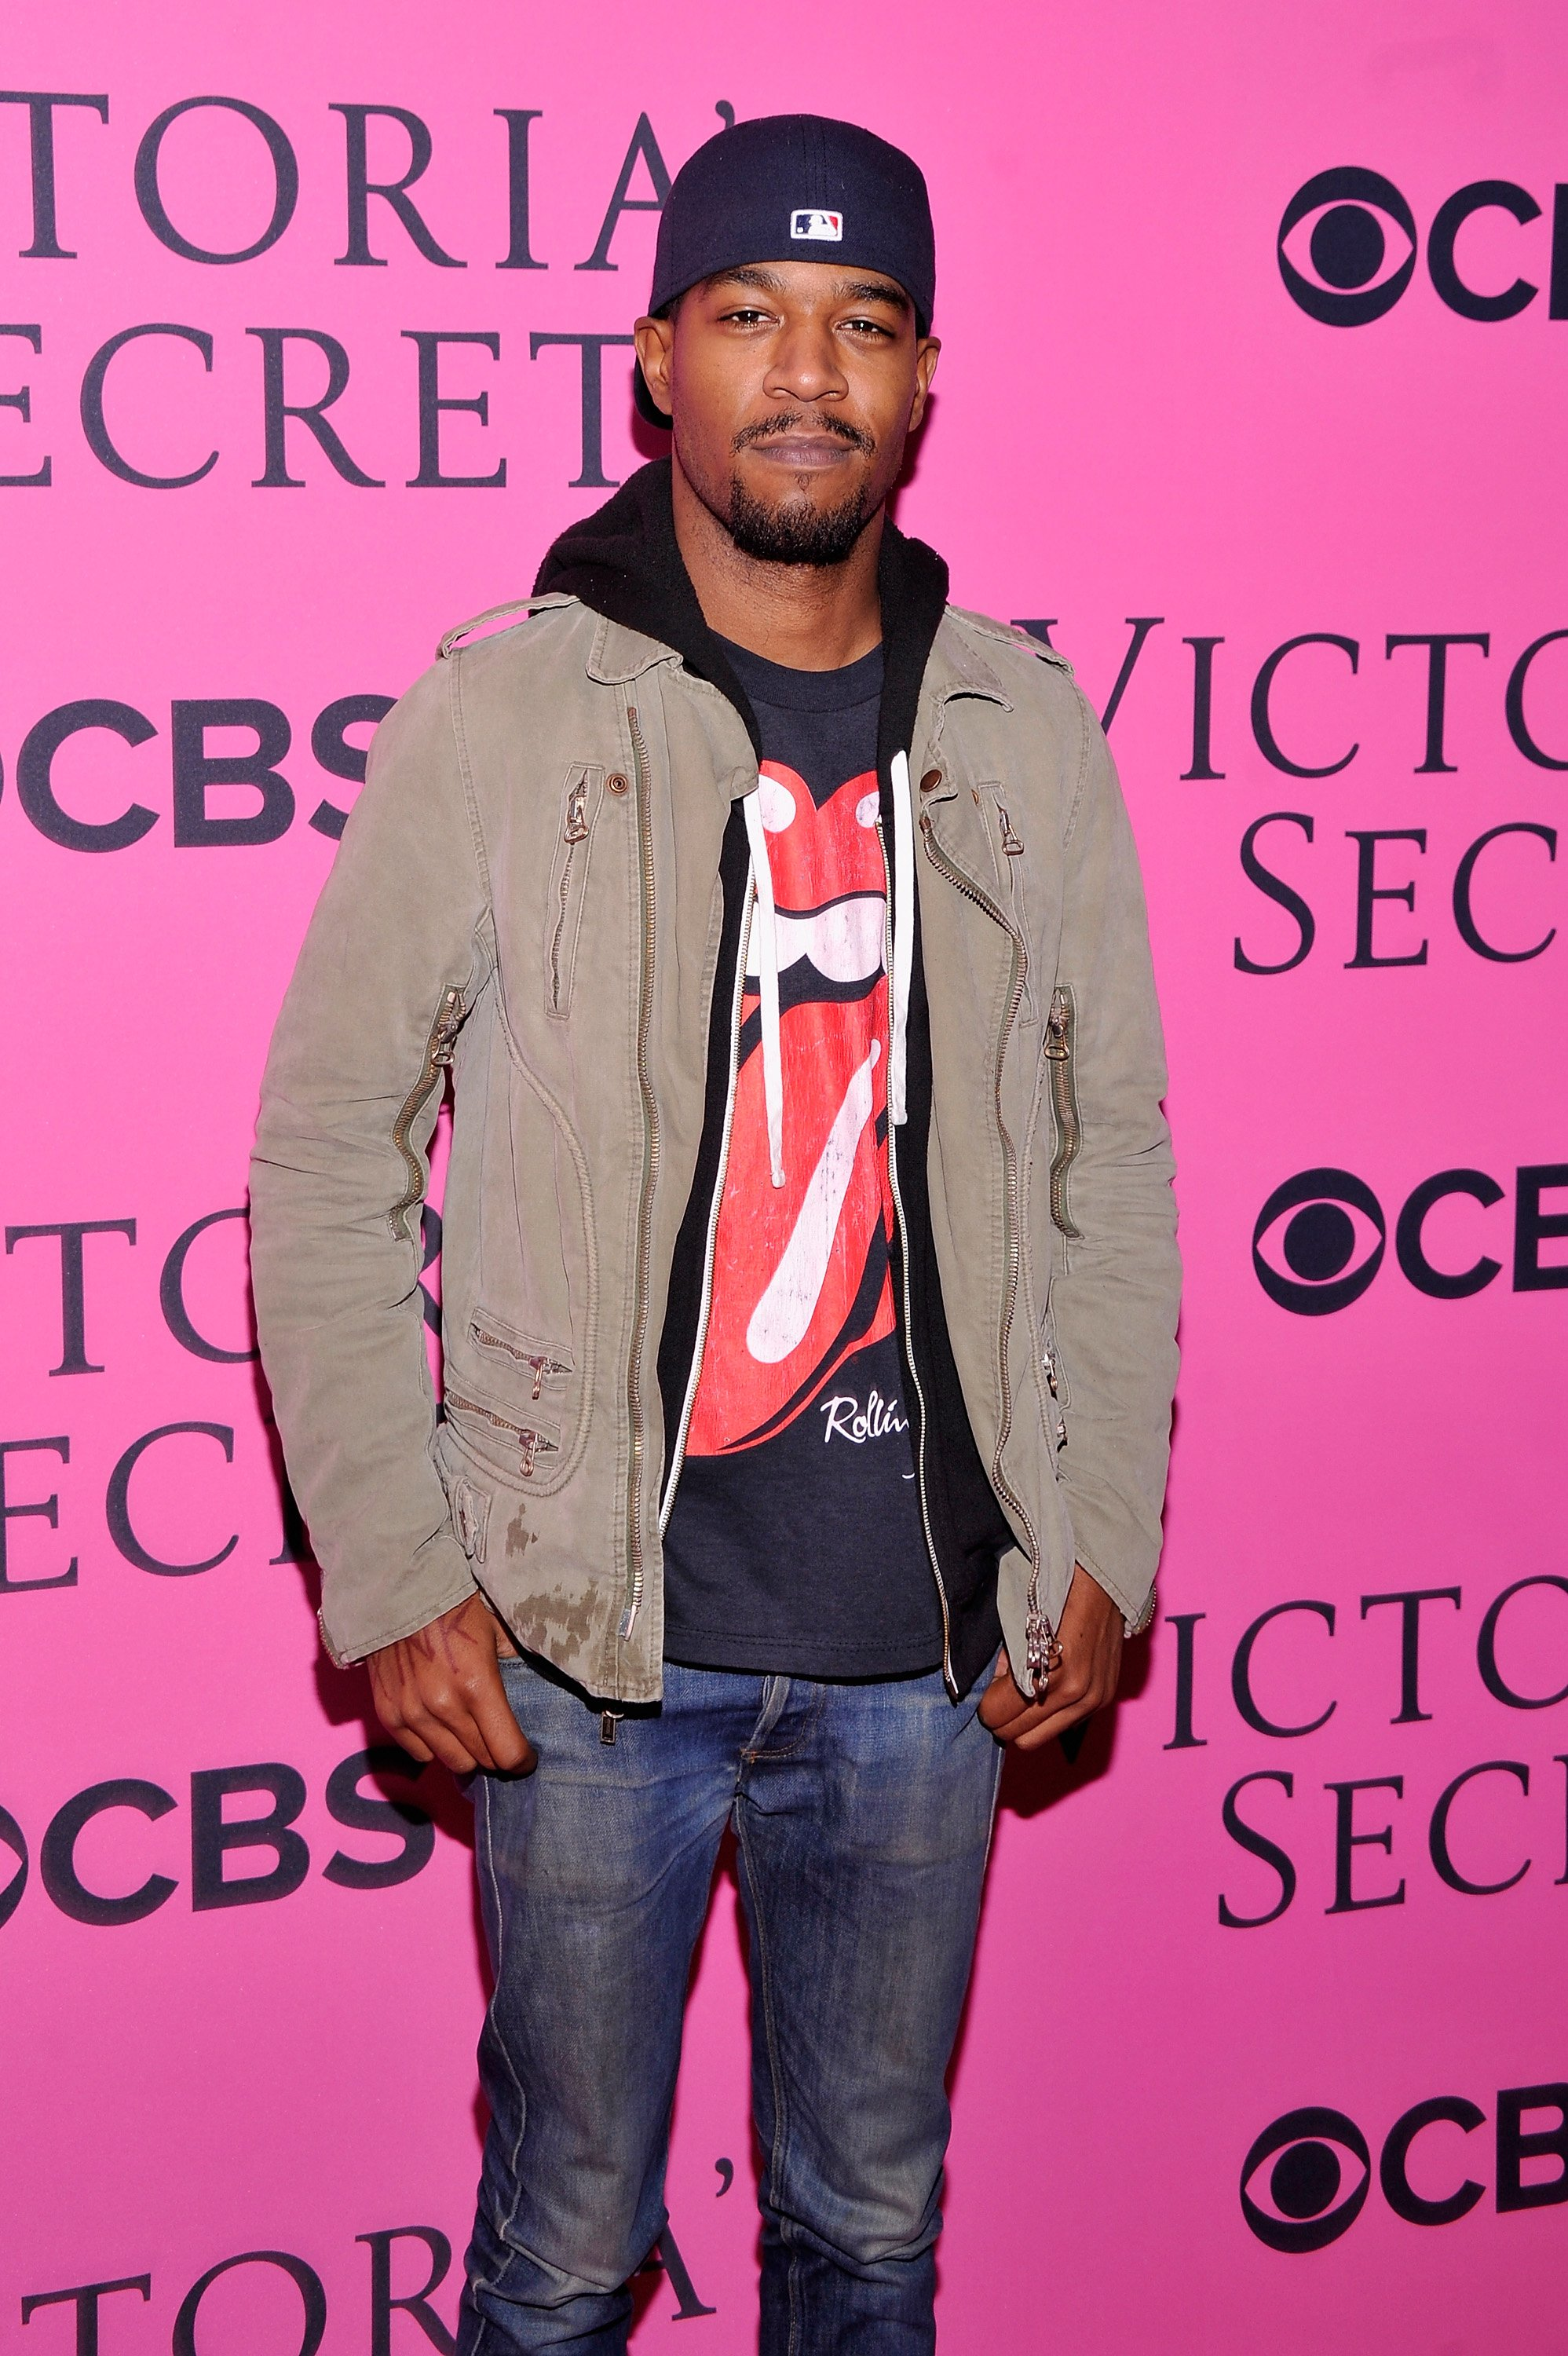 Kid Cudi attends the 2012 Victoria's Secret Fashion Show at the Lexington Avenue Armory on November 7, 2012 in New York City